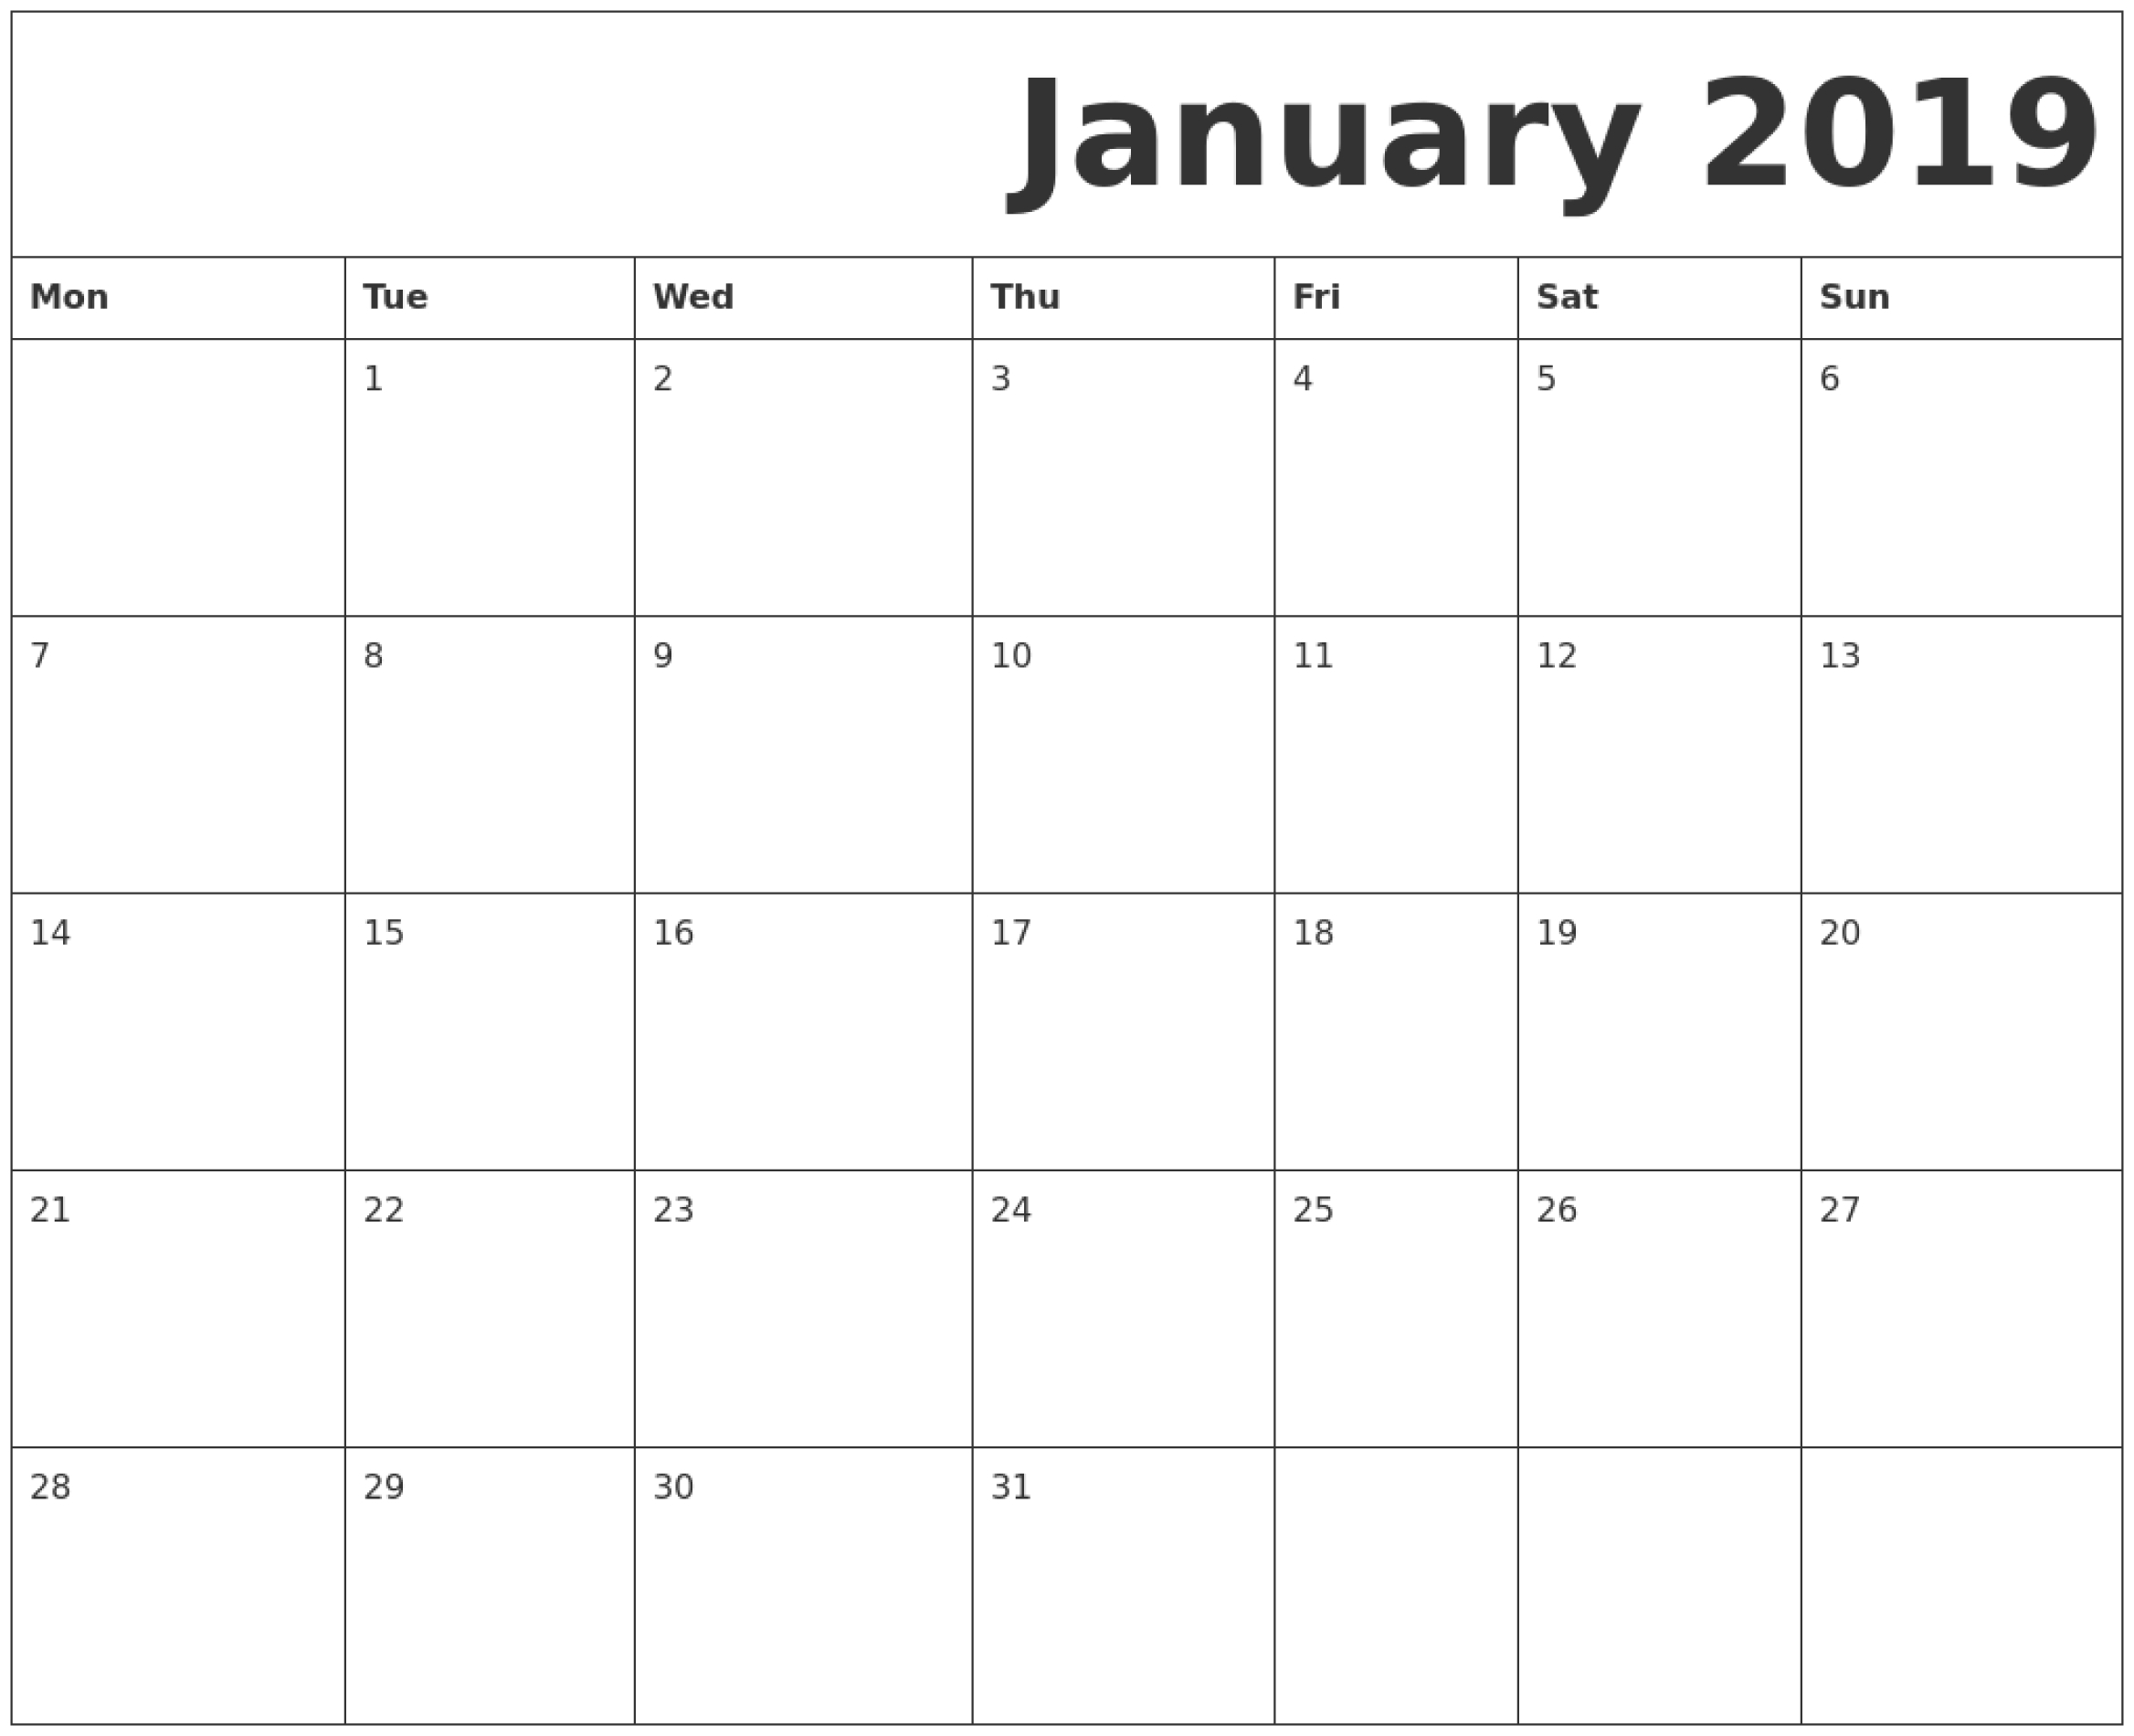 January 2019 Printable Calendar Monday Start. | January 2019-Monthly Calendar Starting Monday